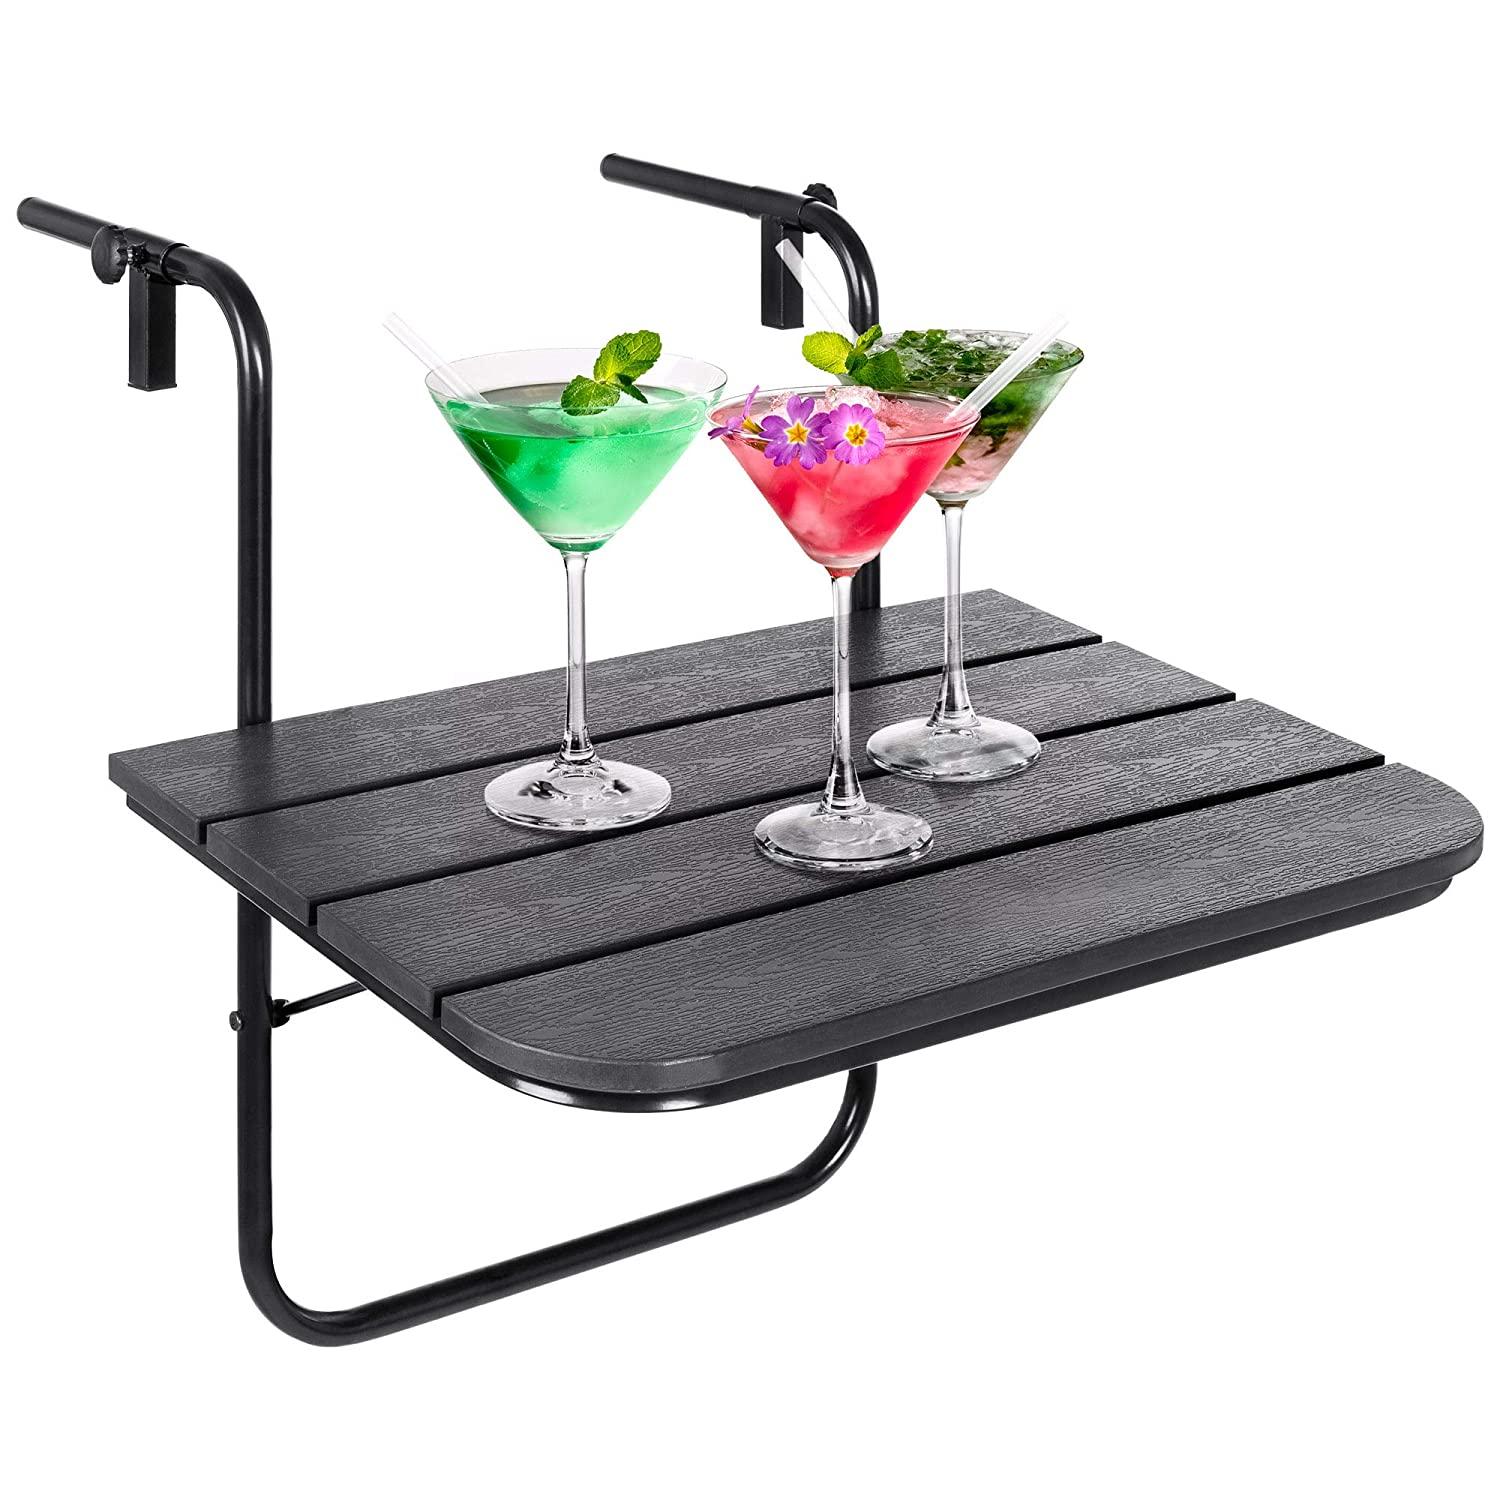 Best Choice Products Portable Folding Hanging Compact Balcony Railing Table Serving Side Stand for Patio, Deck – Black